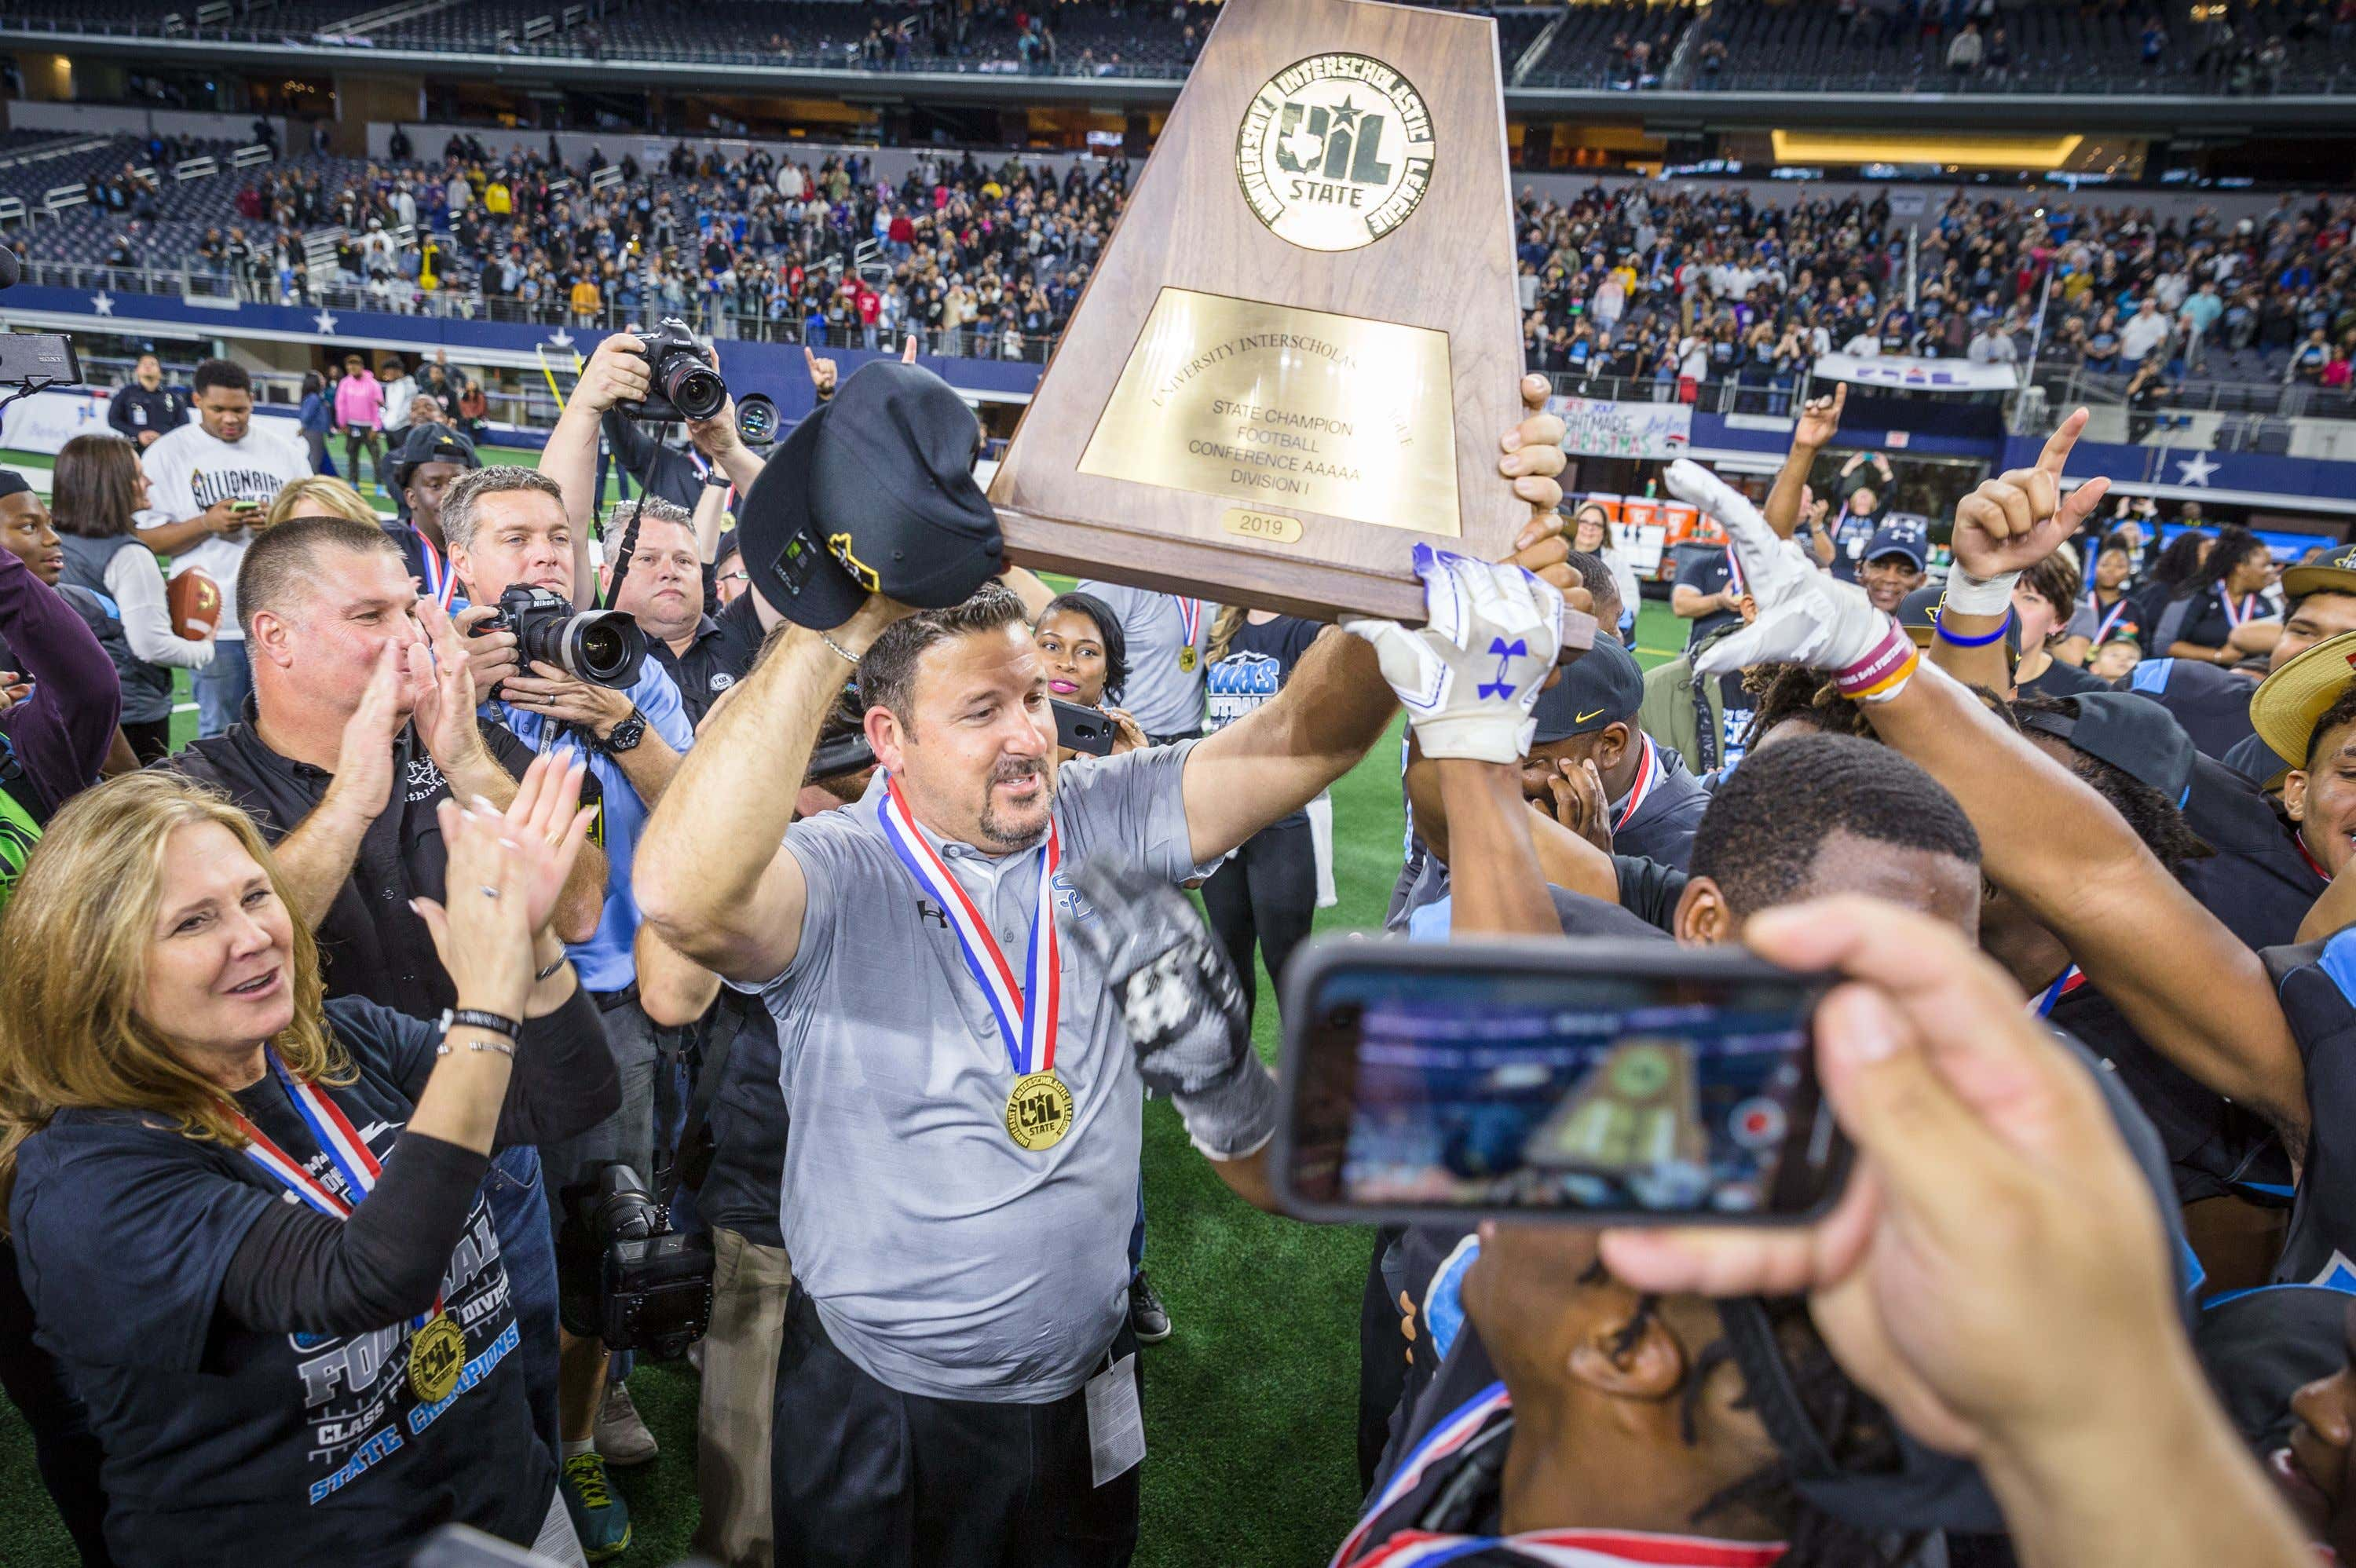 Alvin Shadow Creek Sharks head coach Brad Butler hoists the state championship trophy following the Texas University Interscholastic League (UIL) Class 5A Division 1 state championship game between the Denton Ryan Raiders and the Alvin Shadow Creek Sharks at AT&T Stadium in Arlington, Texas. Alvin Shadow Creek defeated Denton Ryan 28-22. Prentice C